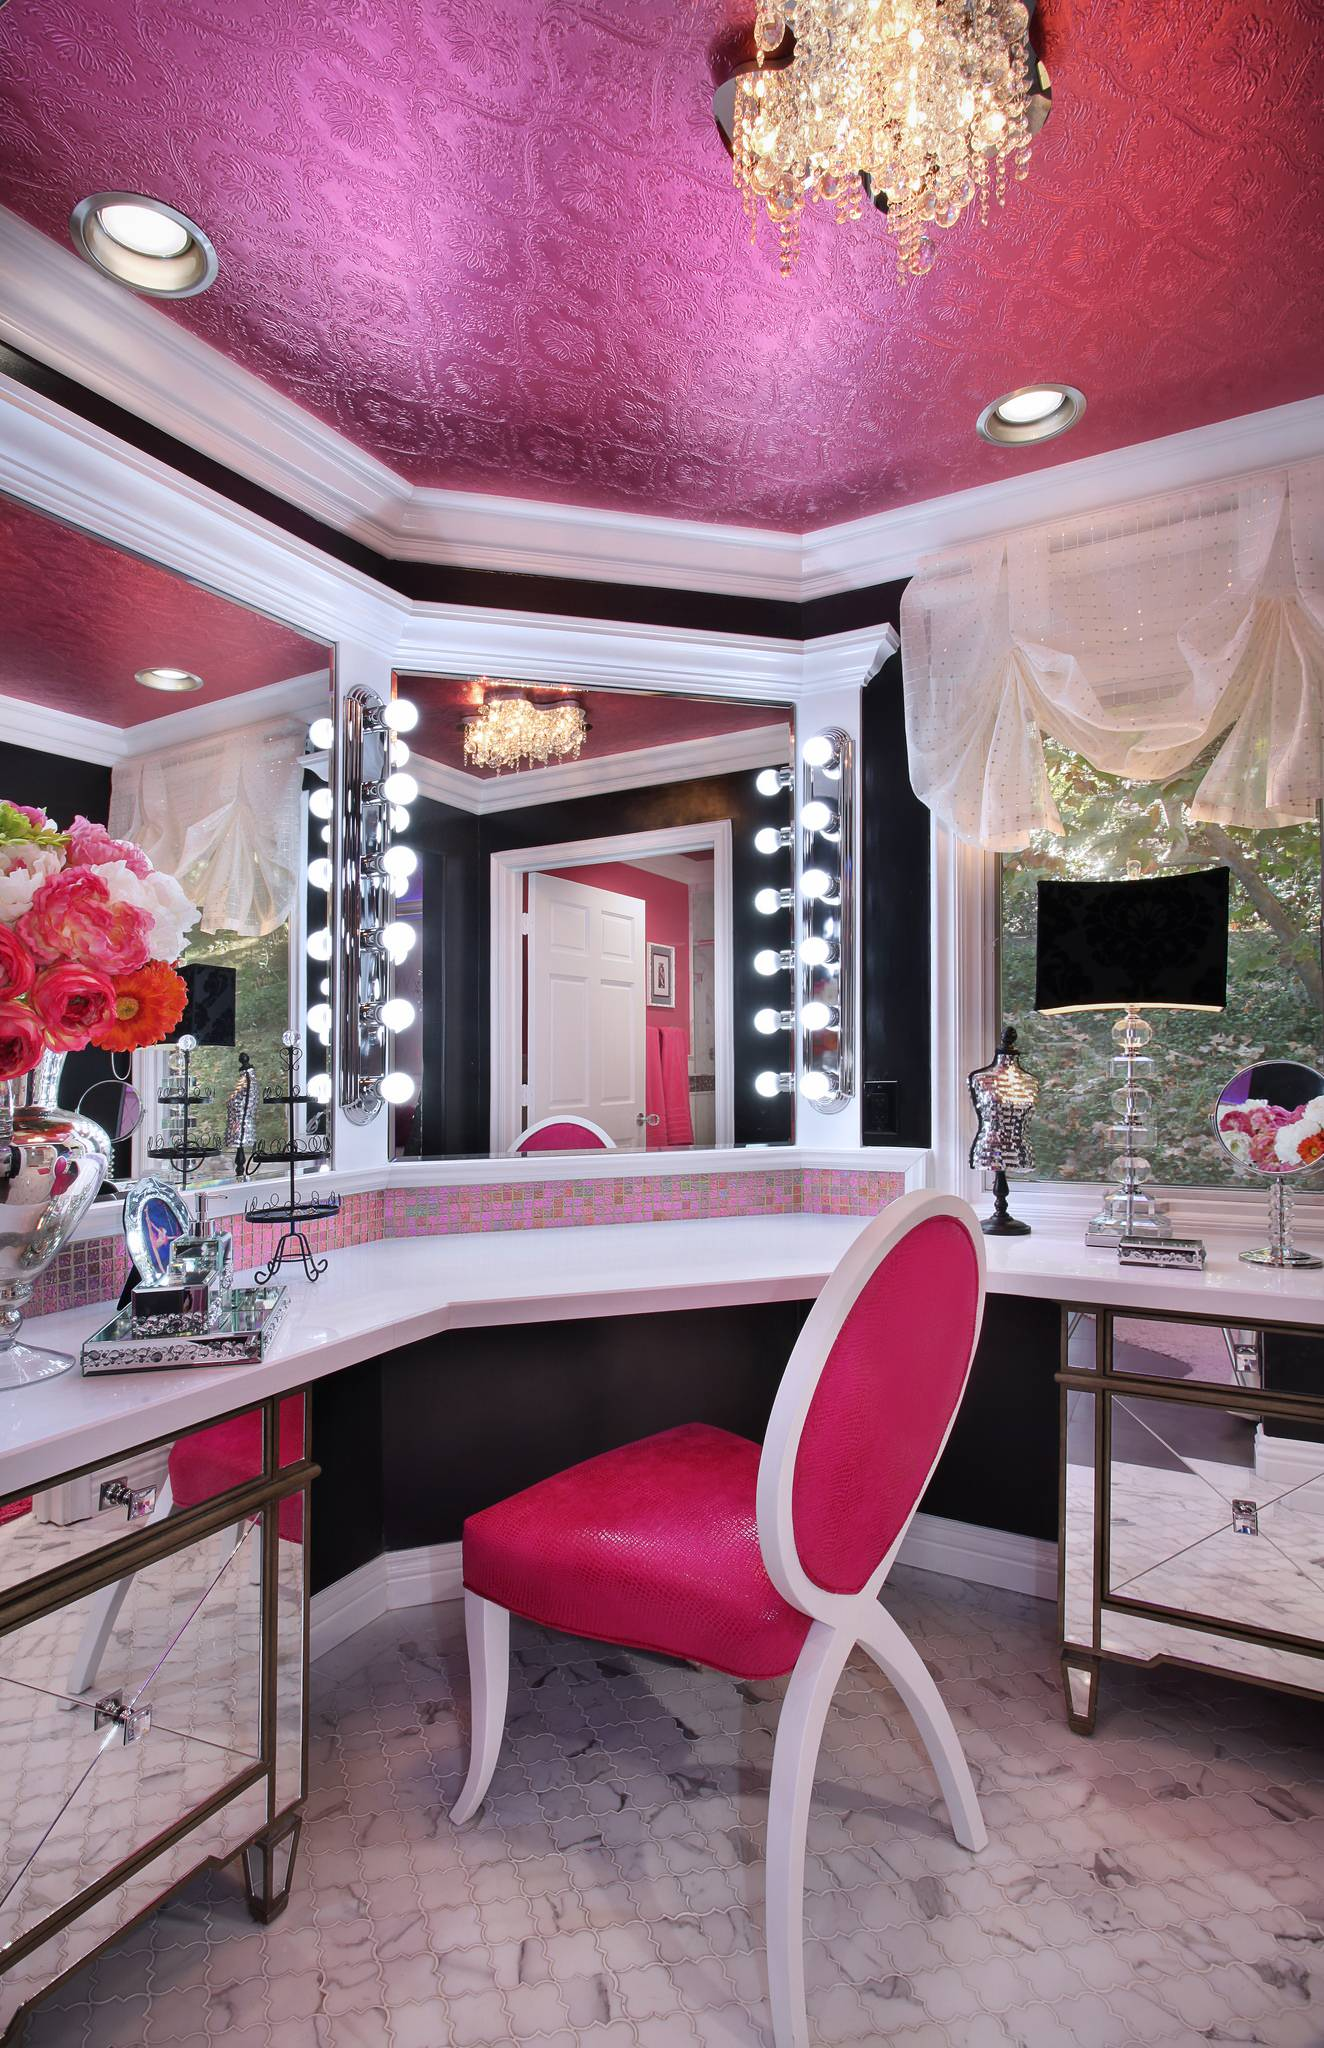 7 Steps to Your Own Kylie Jenner Inspired Glam Room ... on Makeup Room  id=16235